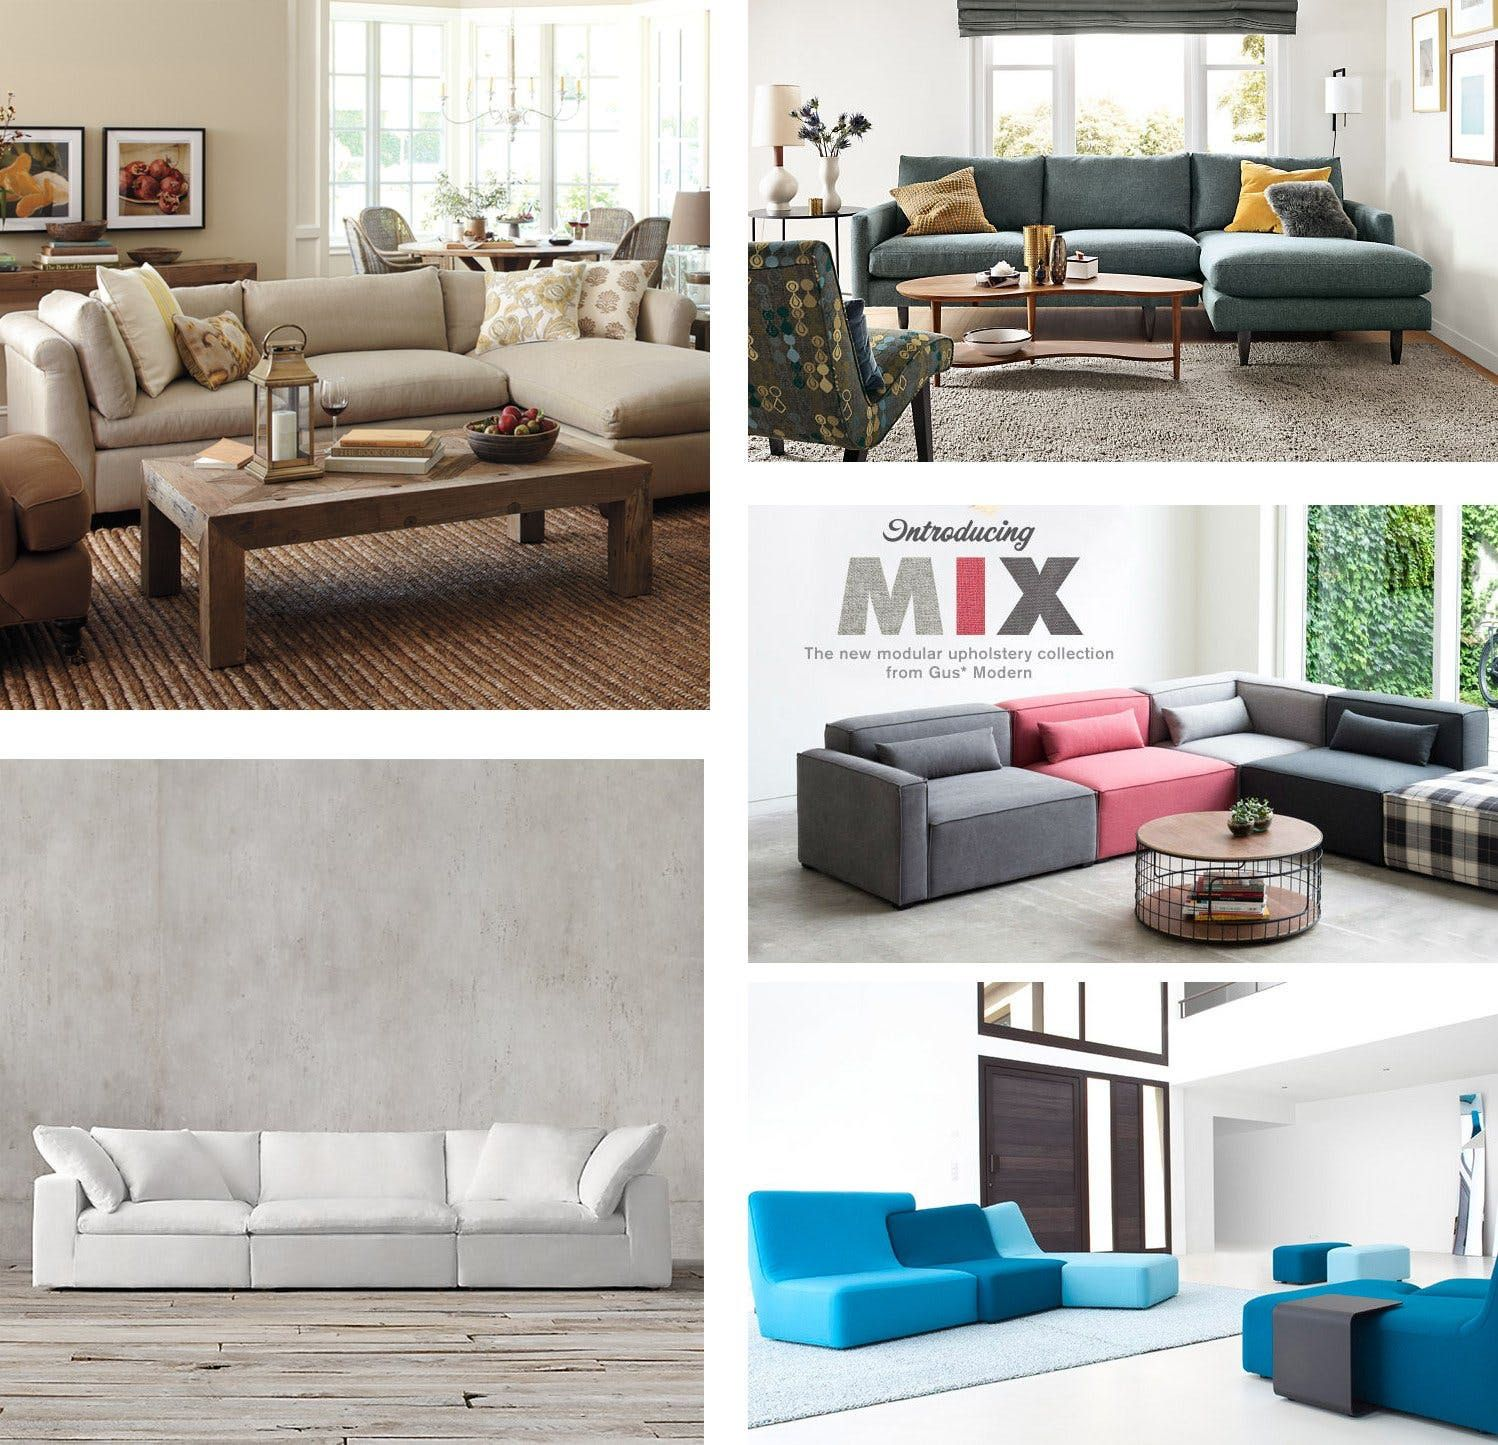 Expandable Modular Best Sectional Sofas Annual Guide 2017